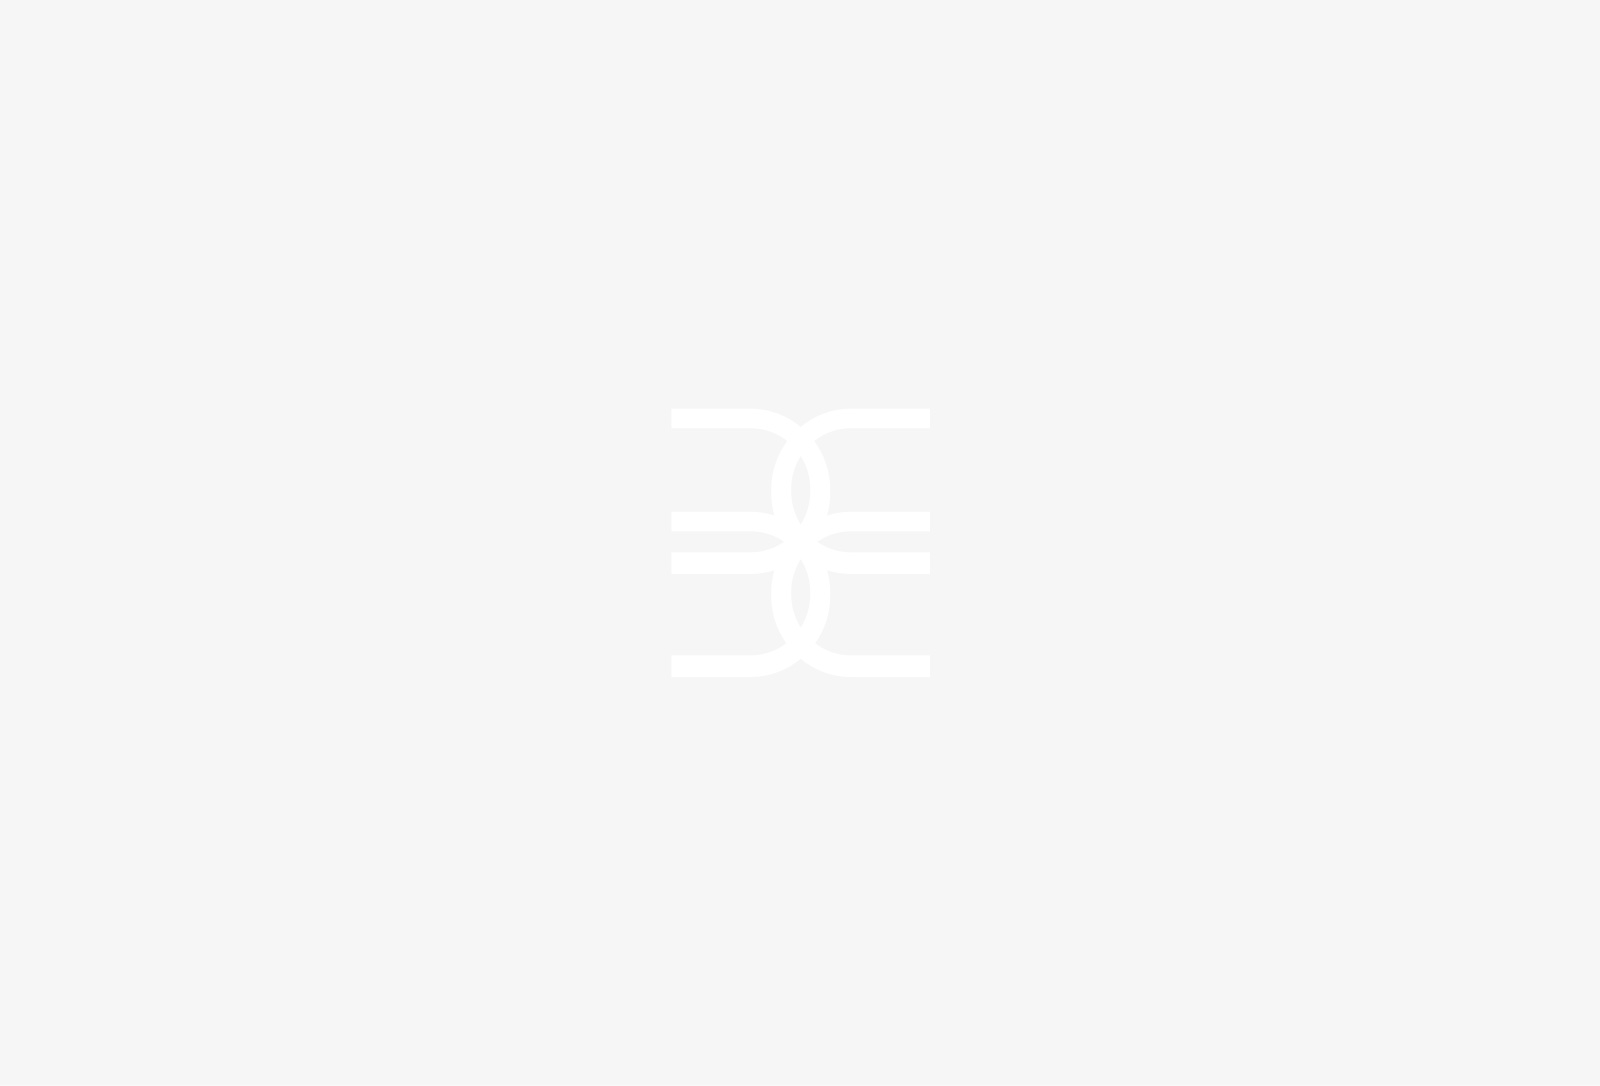 Восстанавливающая детокс-маска для кожи головы Omorovicza Revitalising Scalp Mask